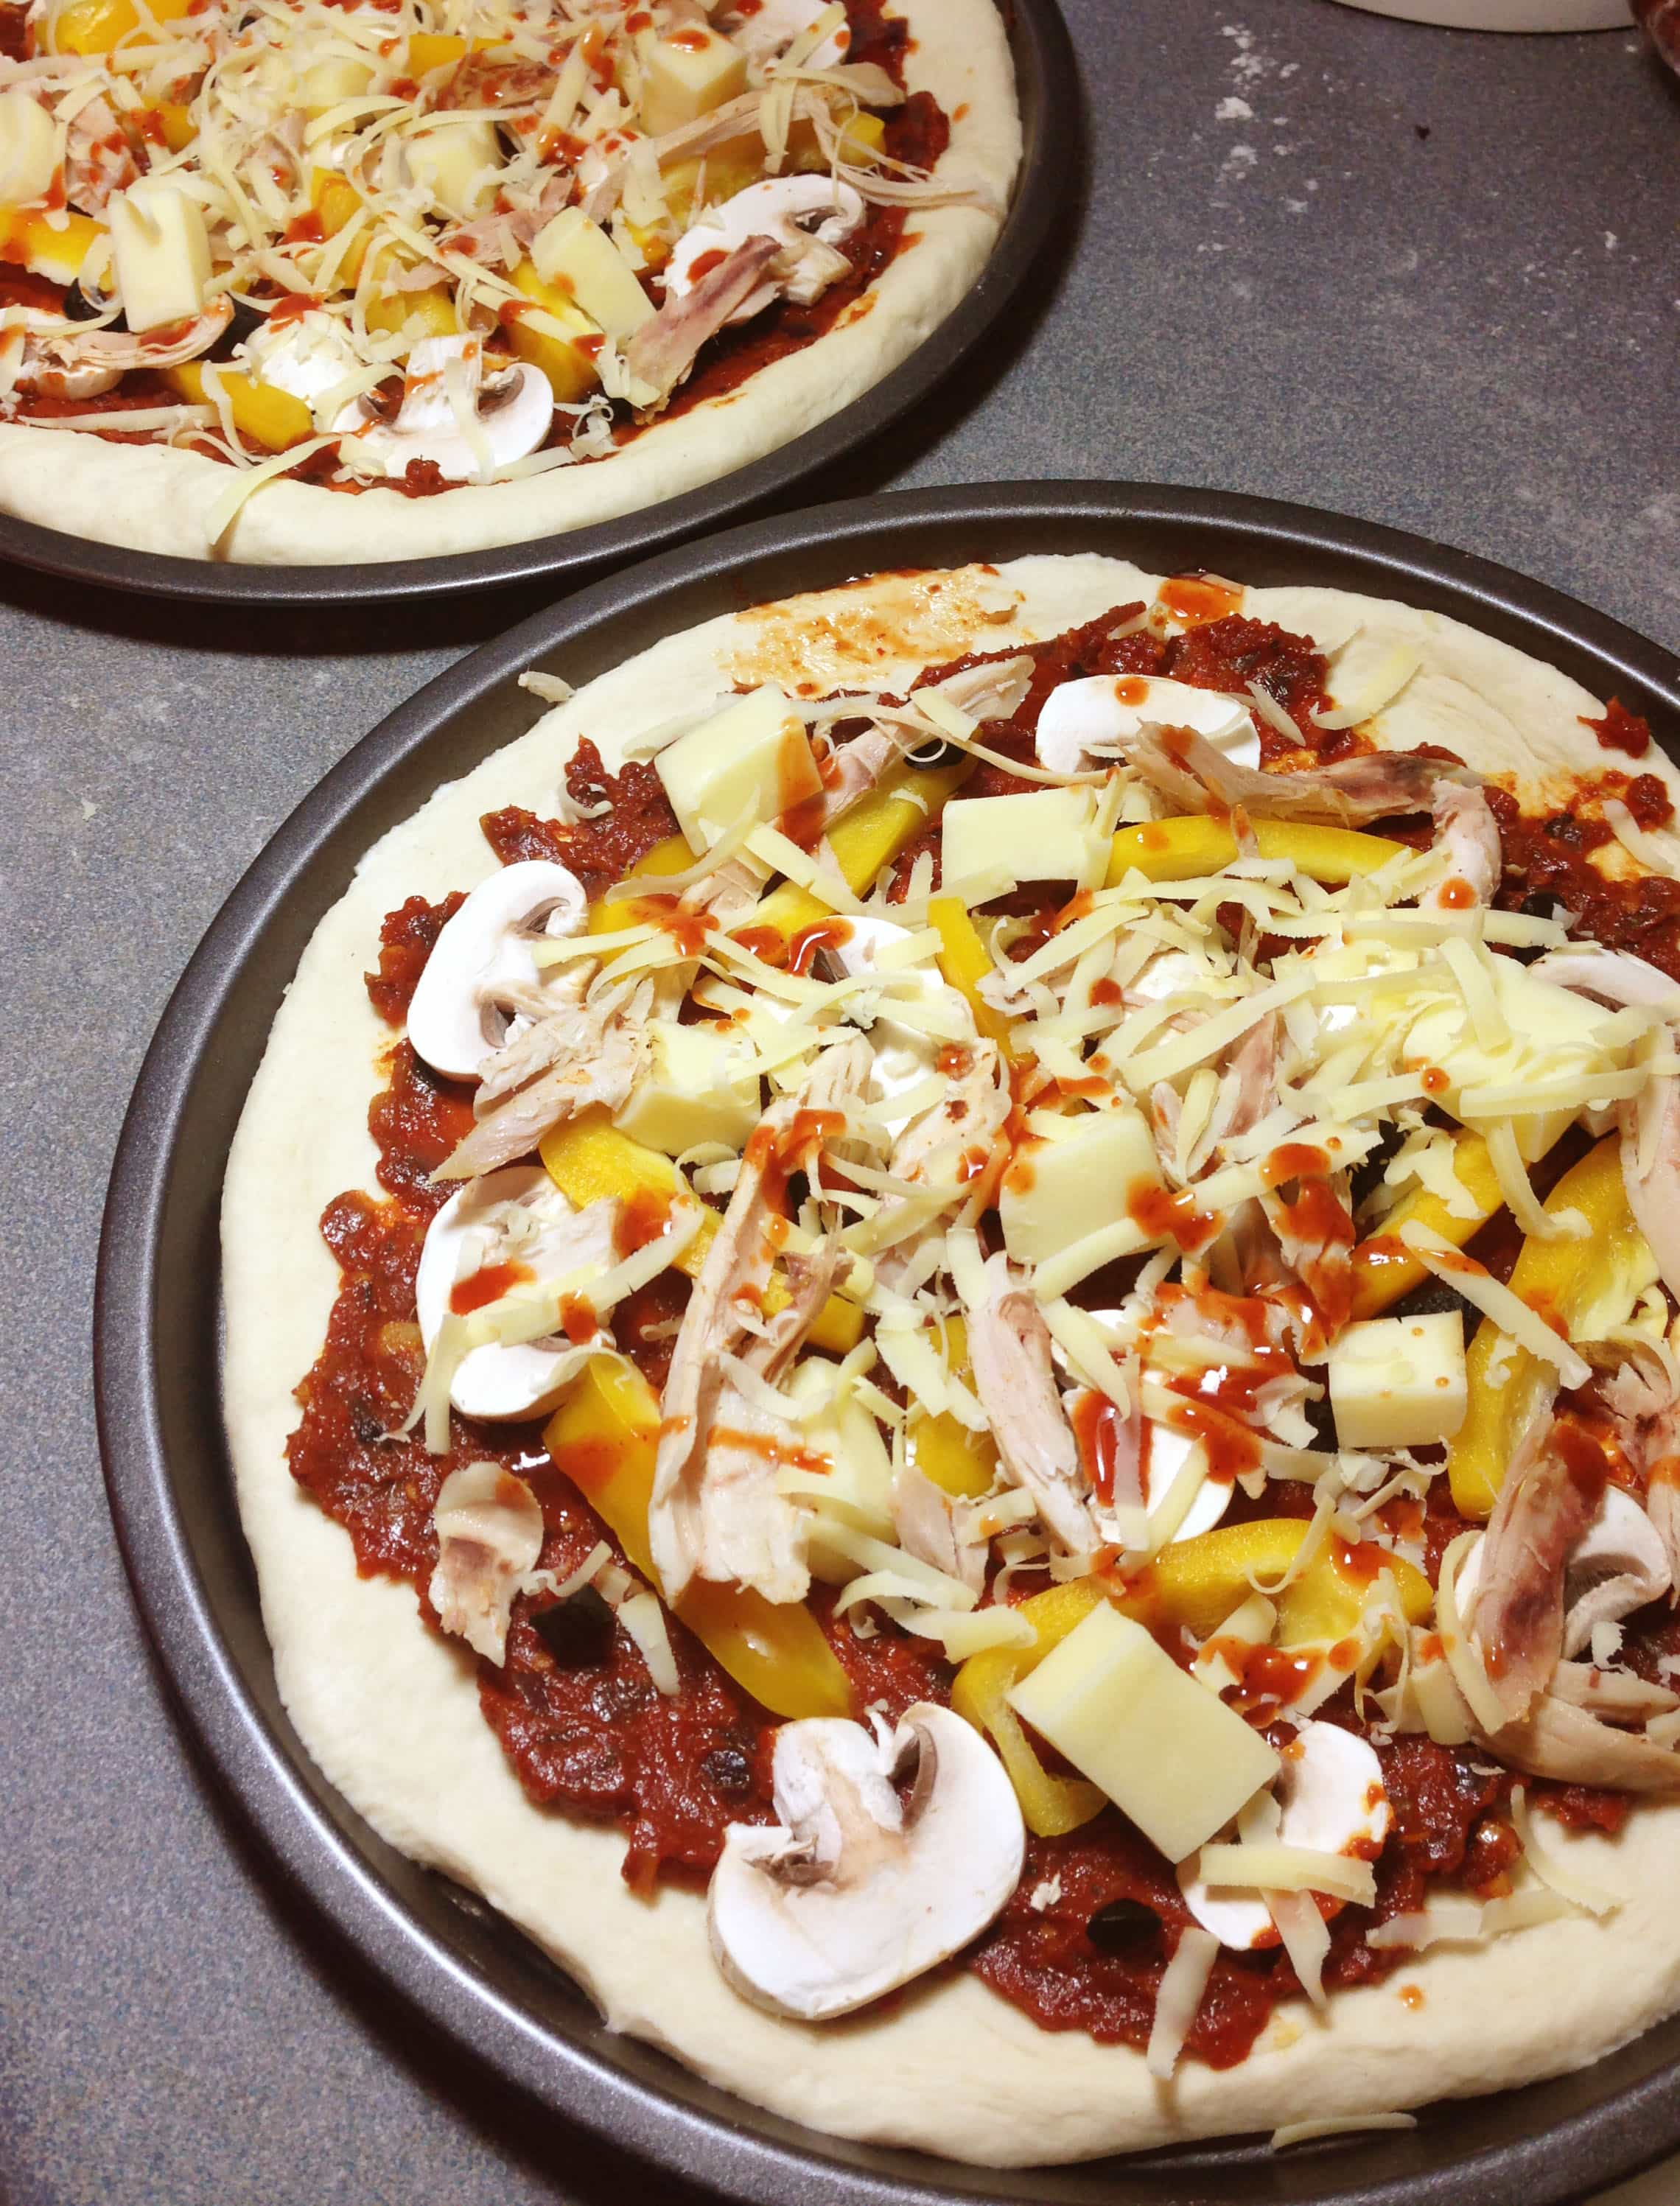 Chicken, Mushroom, Pepper and Black Garlic Pizza